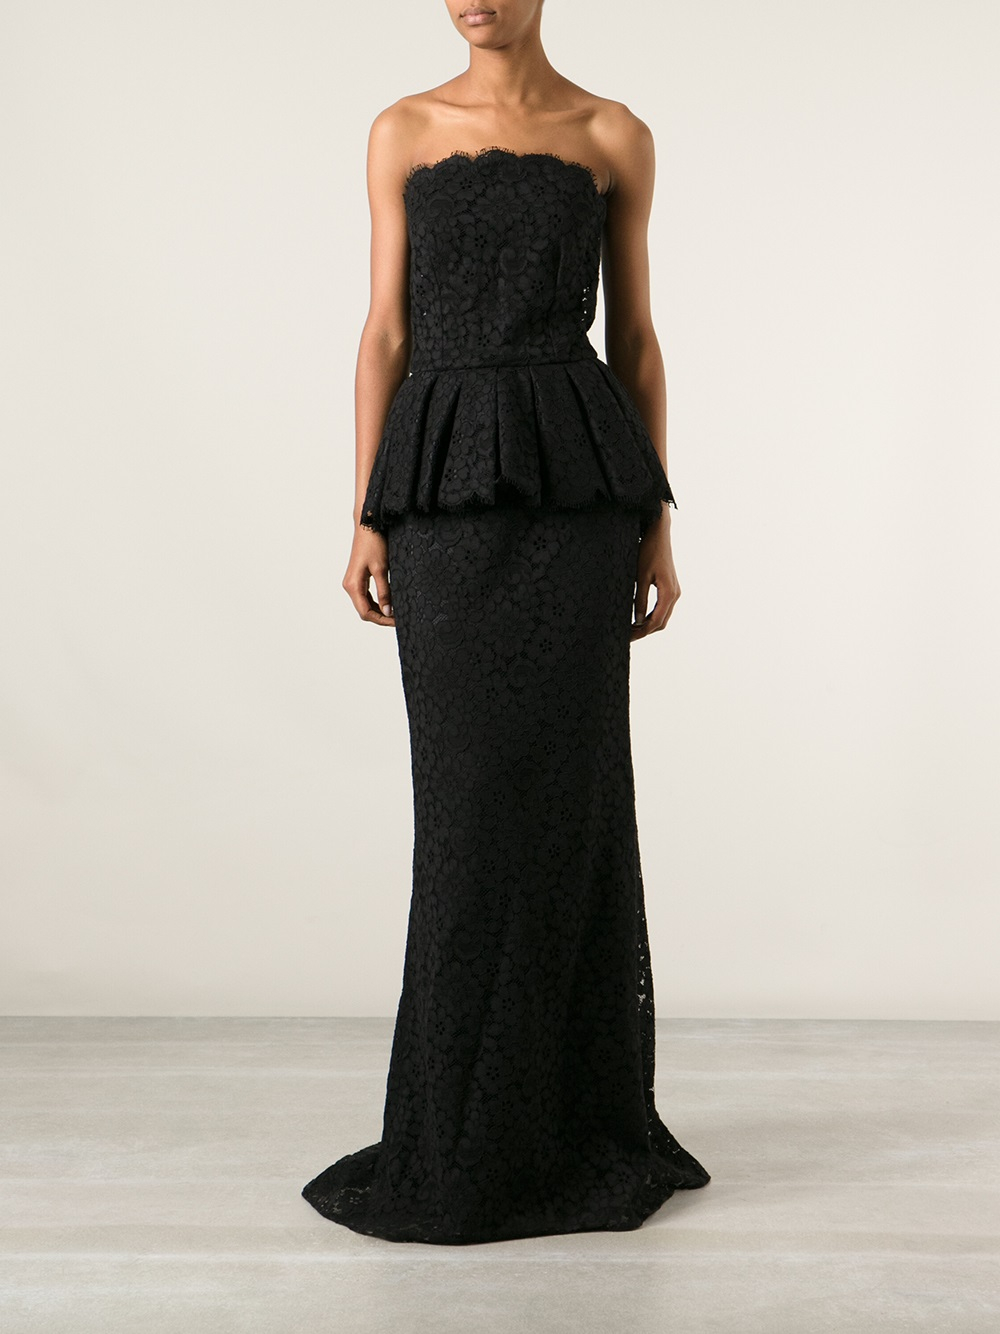 Dolce Amp Gabbana Peplum Lace Evening Dress In Black Lyst